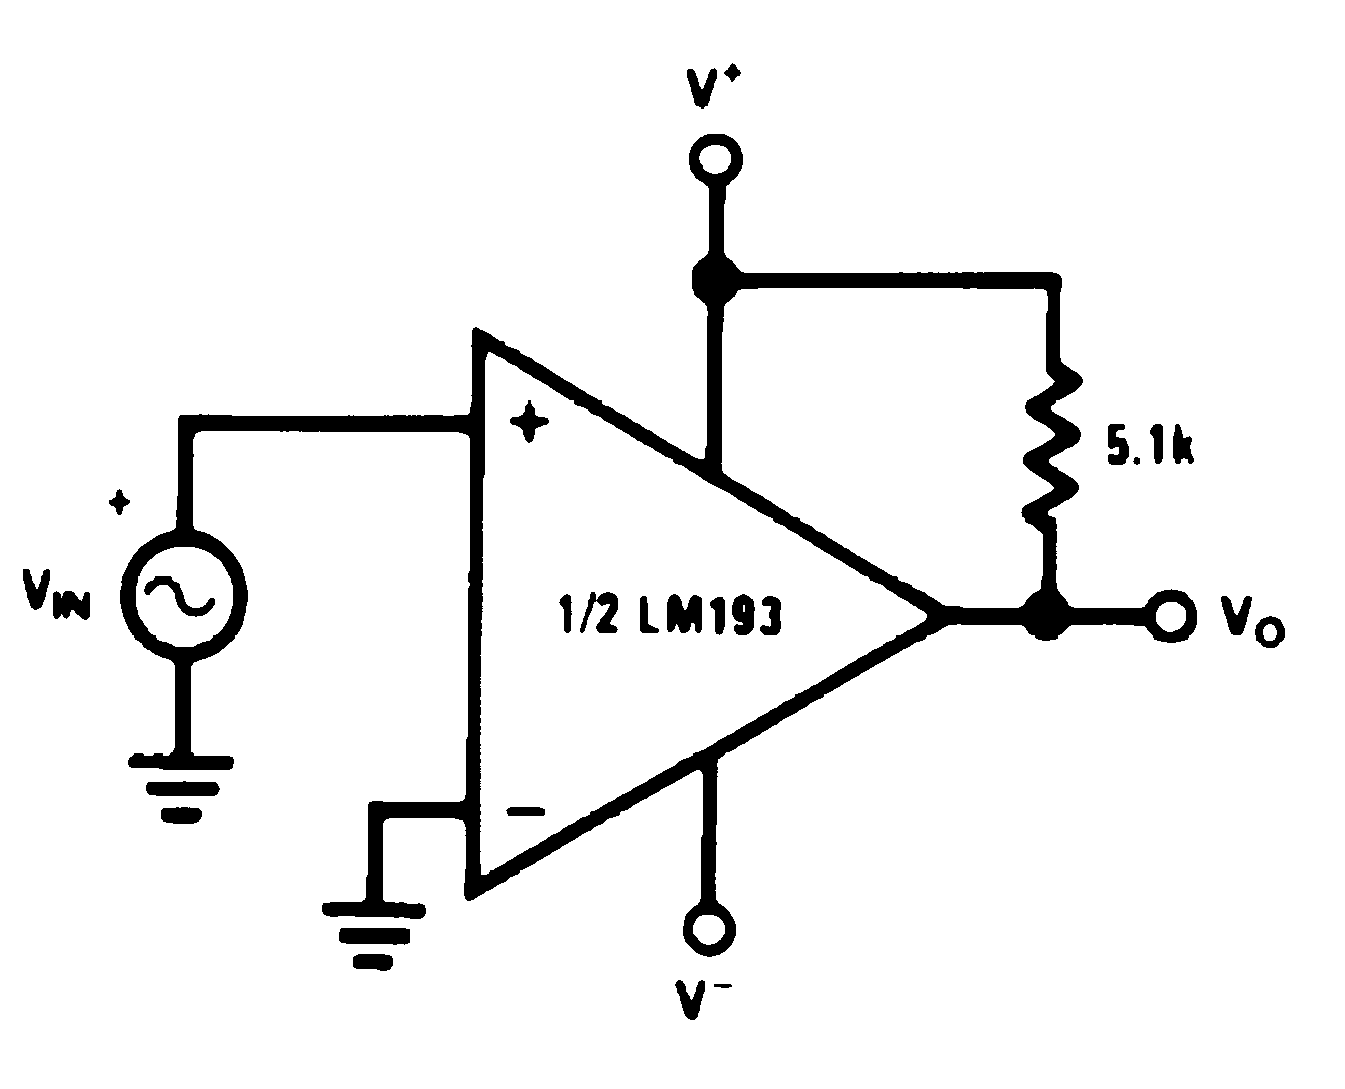 Lm193 N Zero Crossing Circuit Lm2903 Lm293 Lm393 00570943 Figure 35 Detector